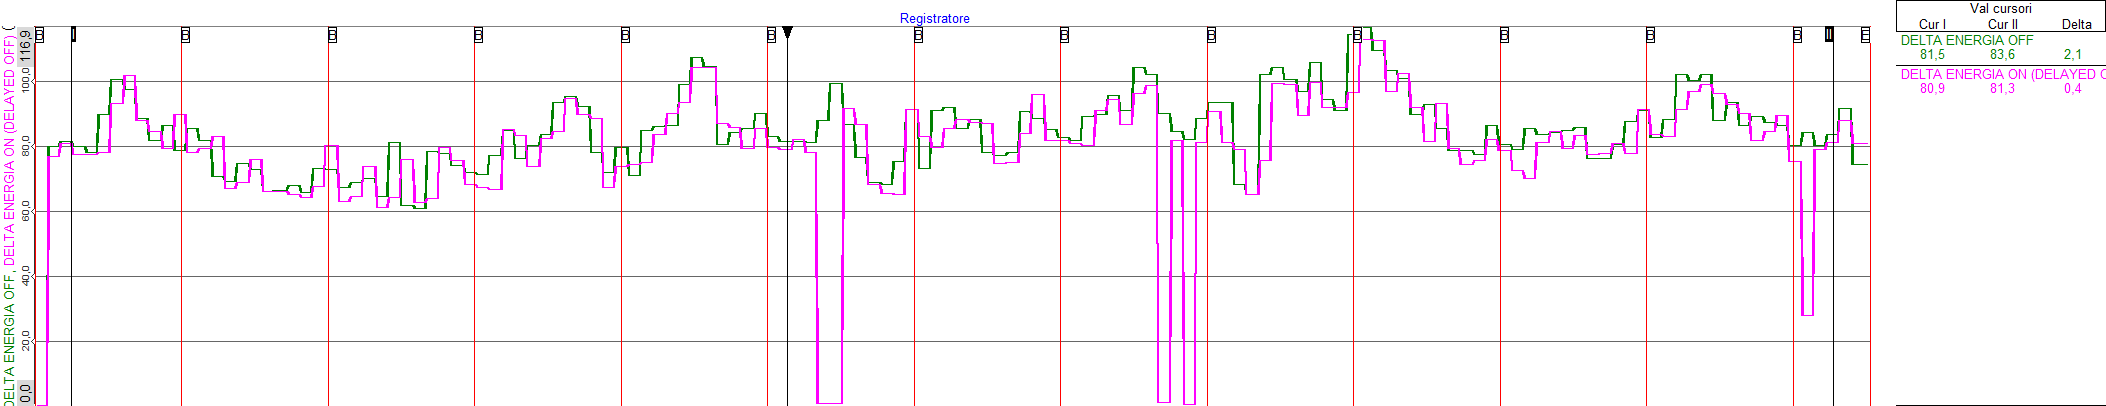 Energy from OFF periods in green, energy from ON periods in pink